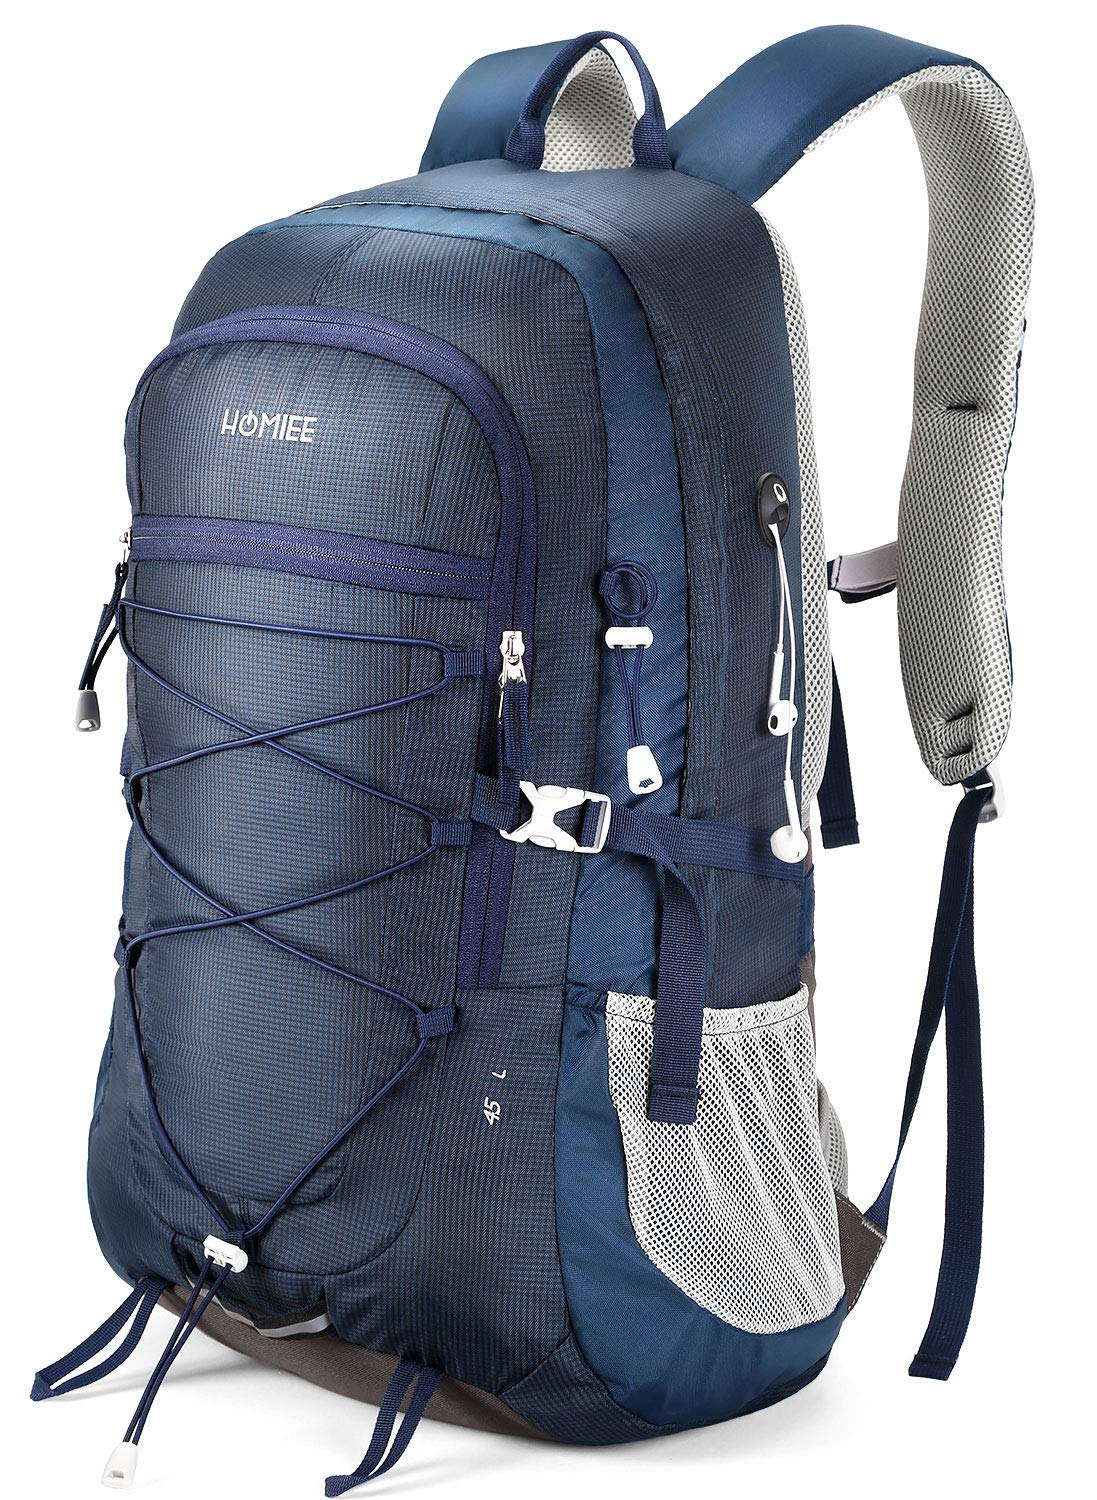 Lightweight Multi-functional Loocower 45L Packable Ultralight Hiking Backpack